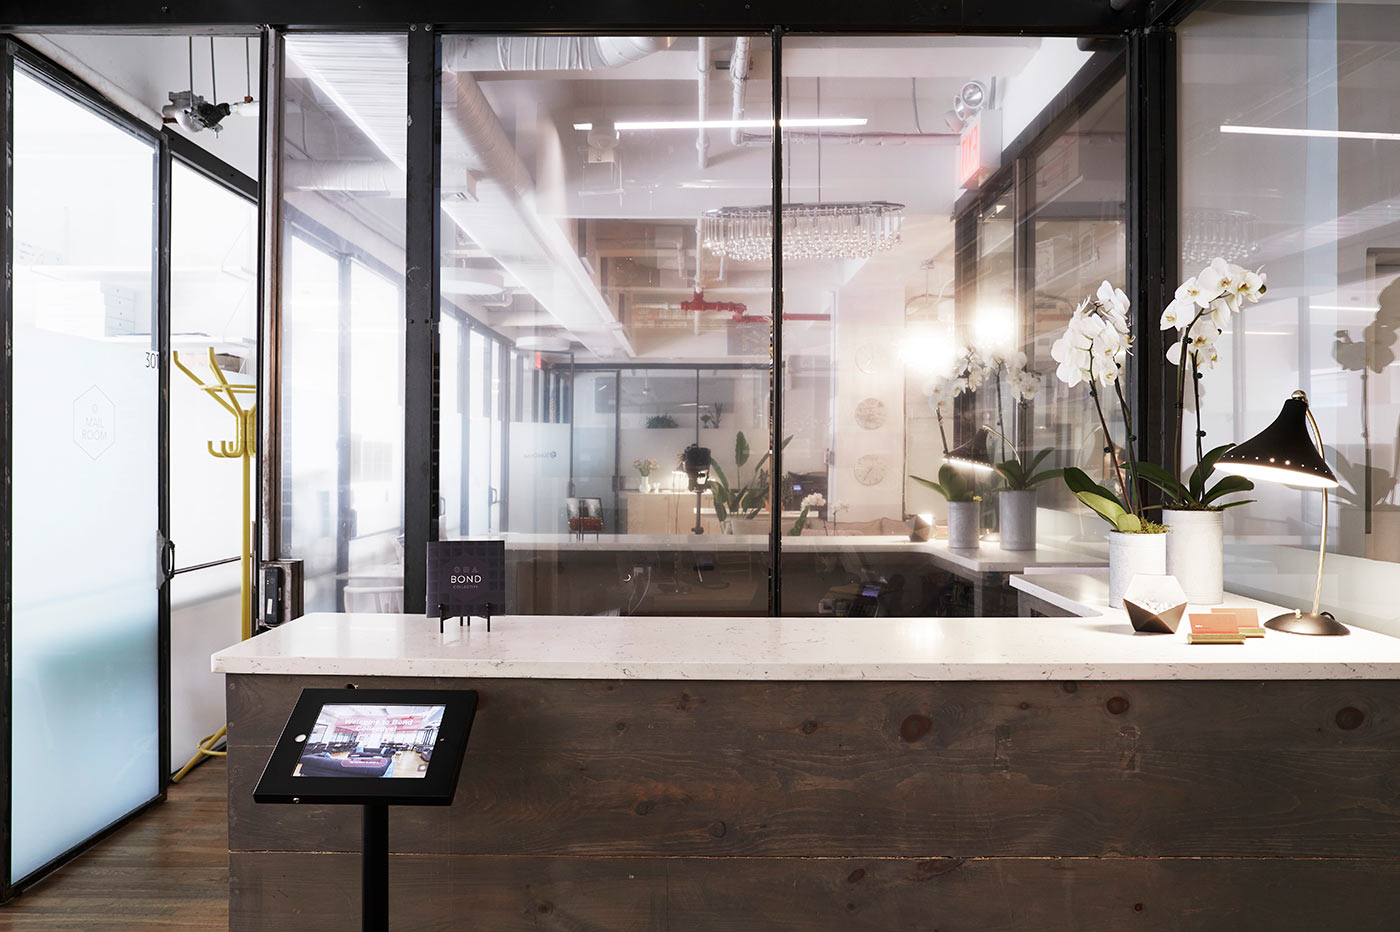 Reception area of a coworking space